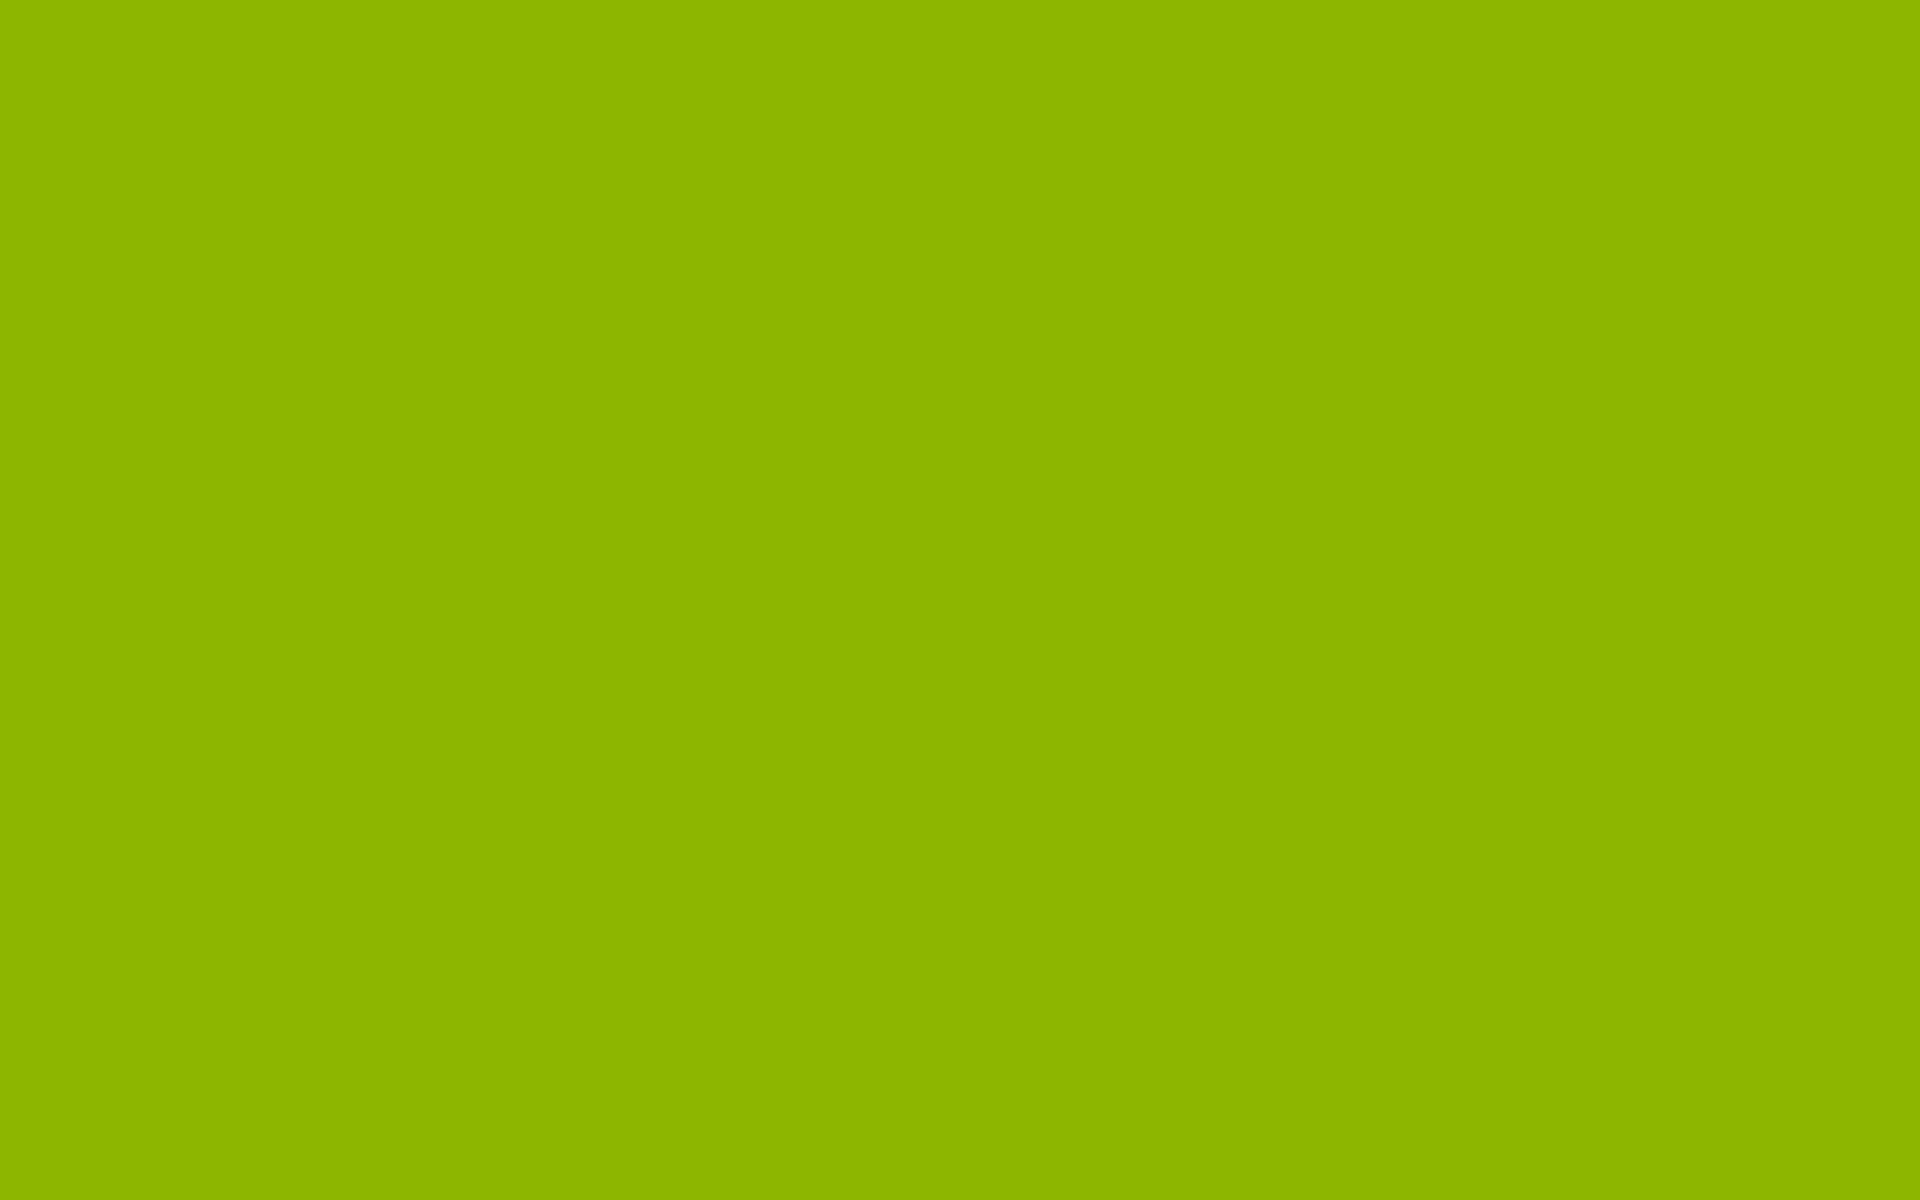 Apple Pages Background Color